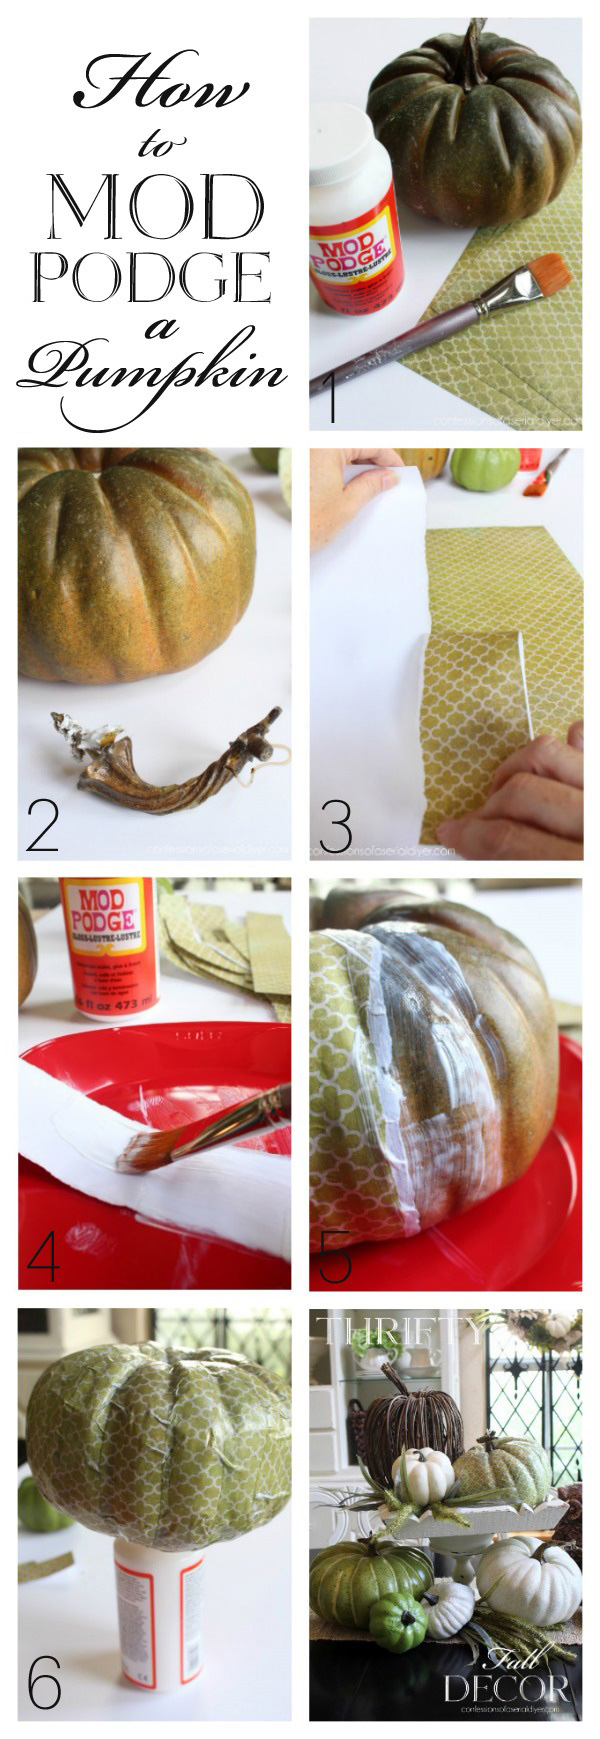 How to Mod Podge a Pumpkin from confessionsofaserialdiyer.com